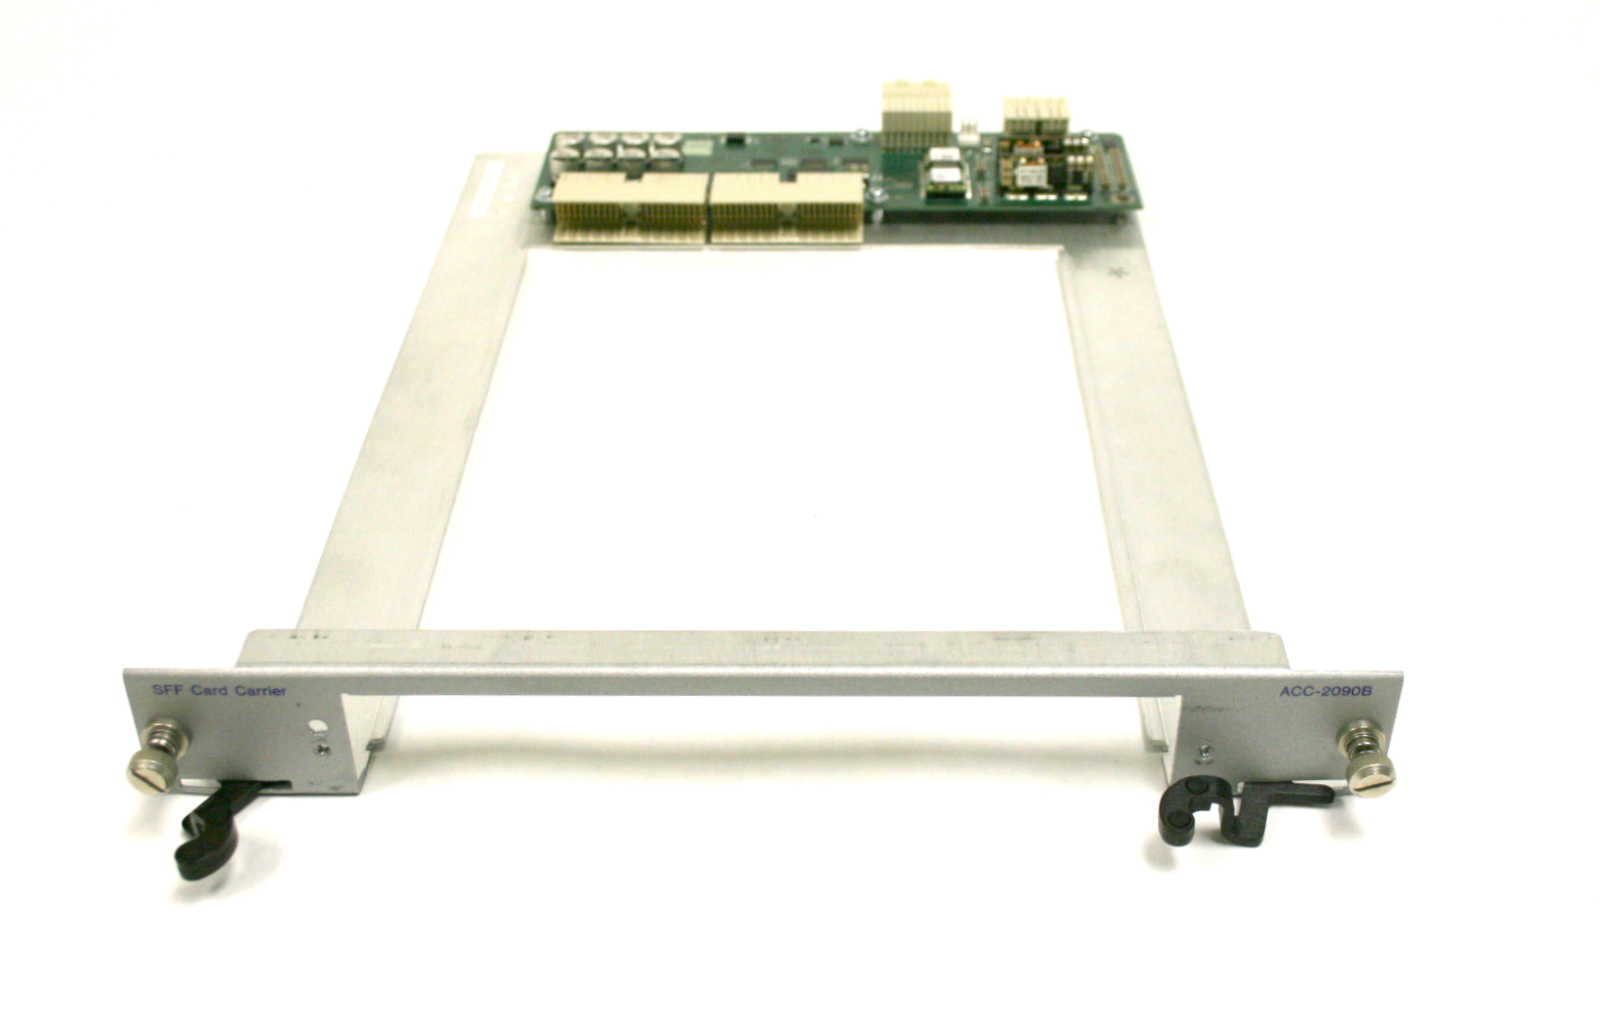 spirent-acc-2090b-small-form-factor-card